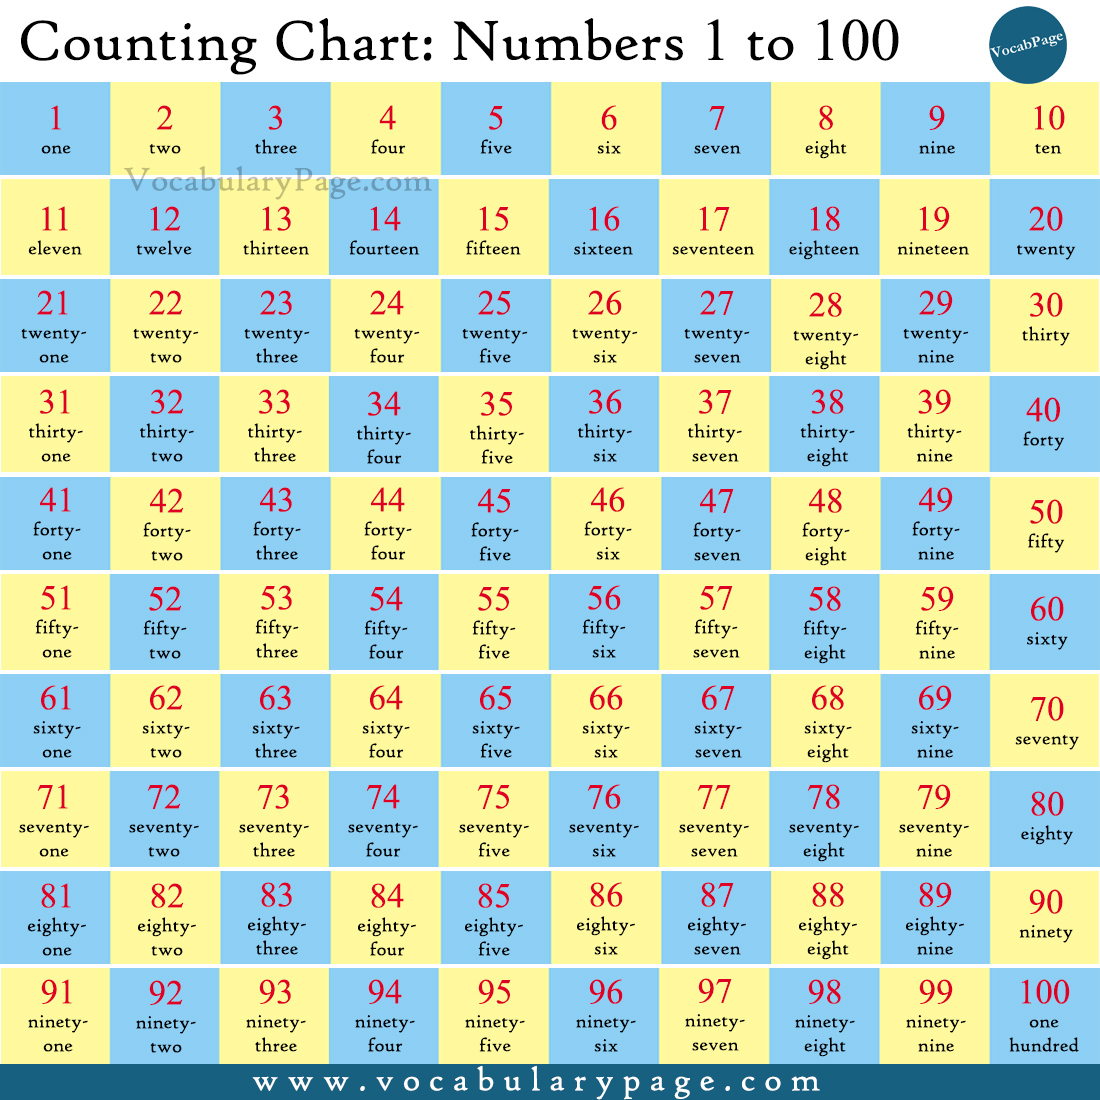 Counting Chart: Numbers 1 to 100